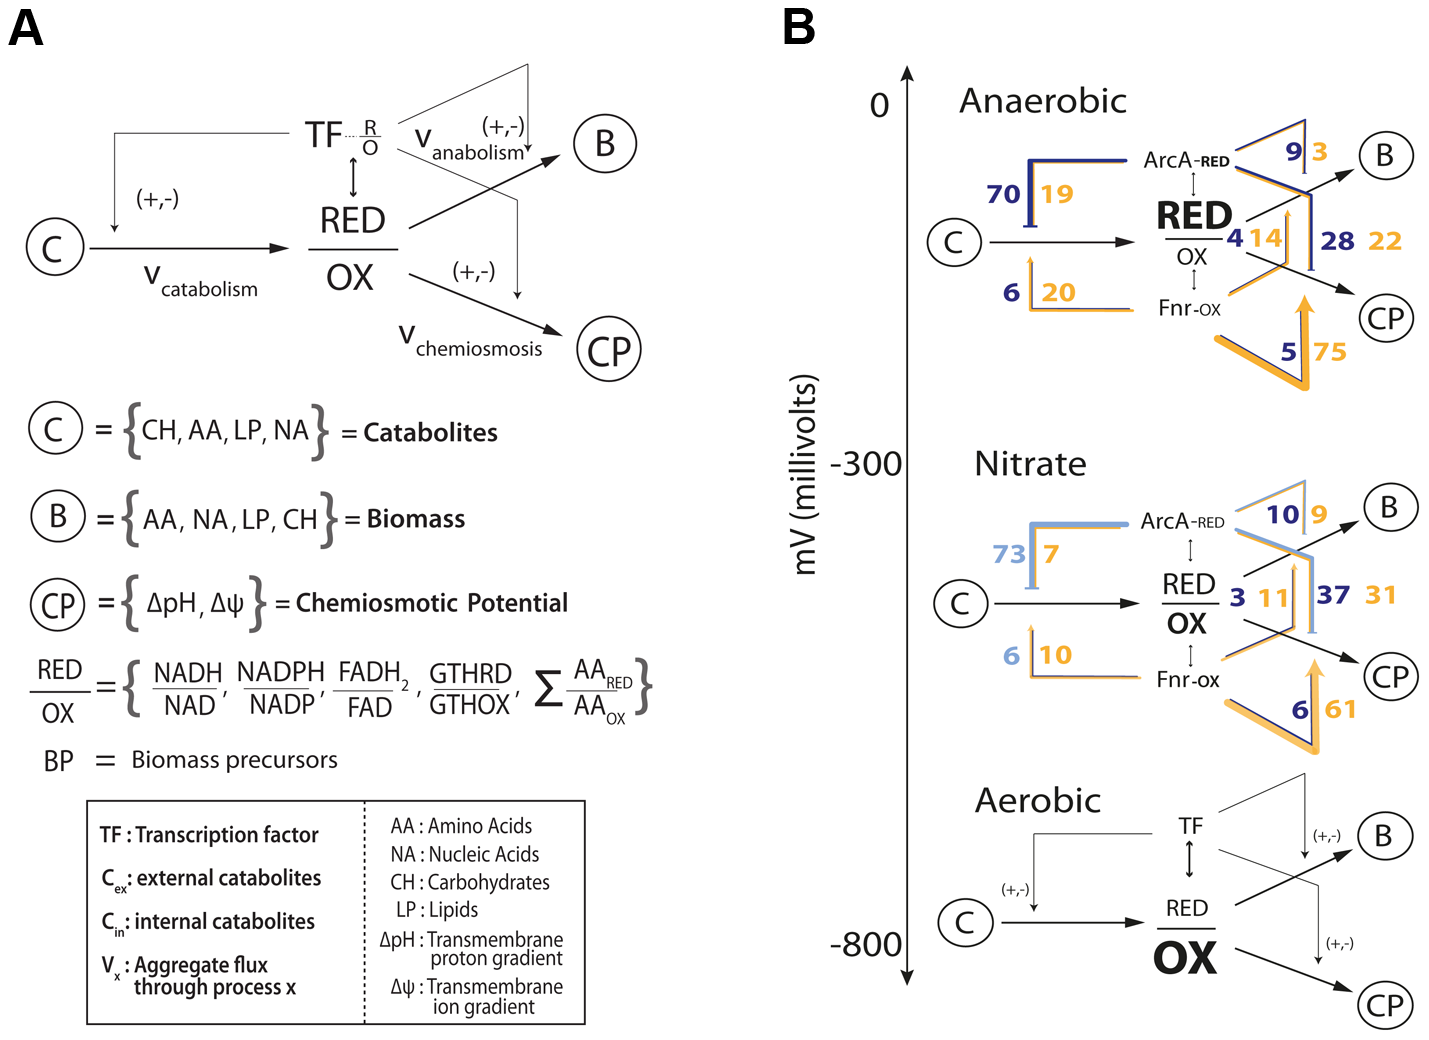 Flow based model of the metabolic-regulatory network explains regulation throughout the anaerobic shift.